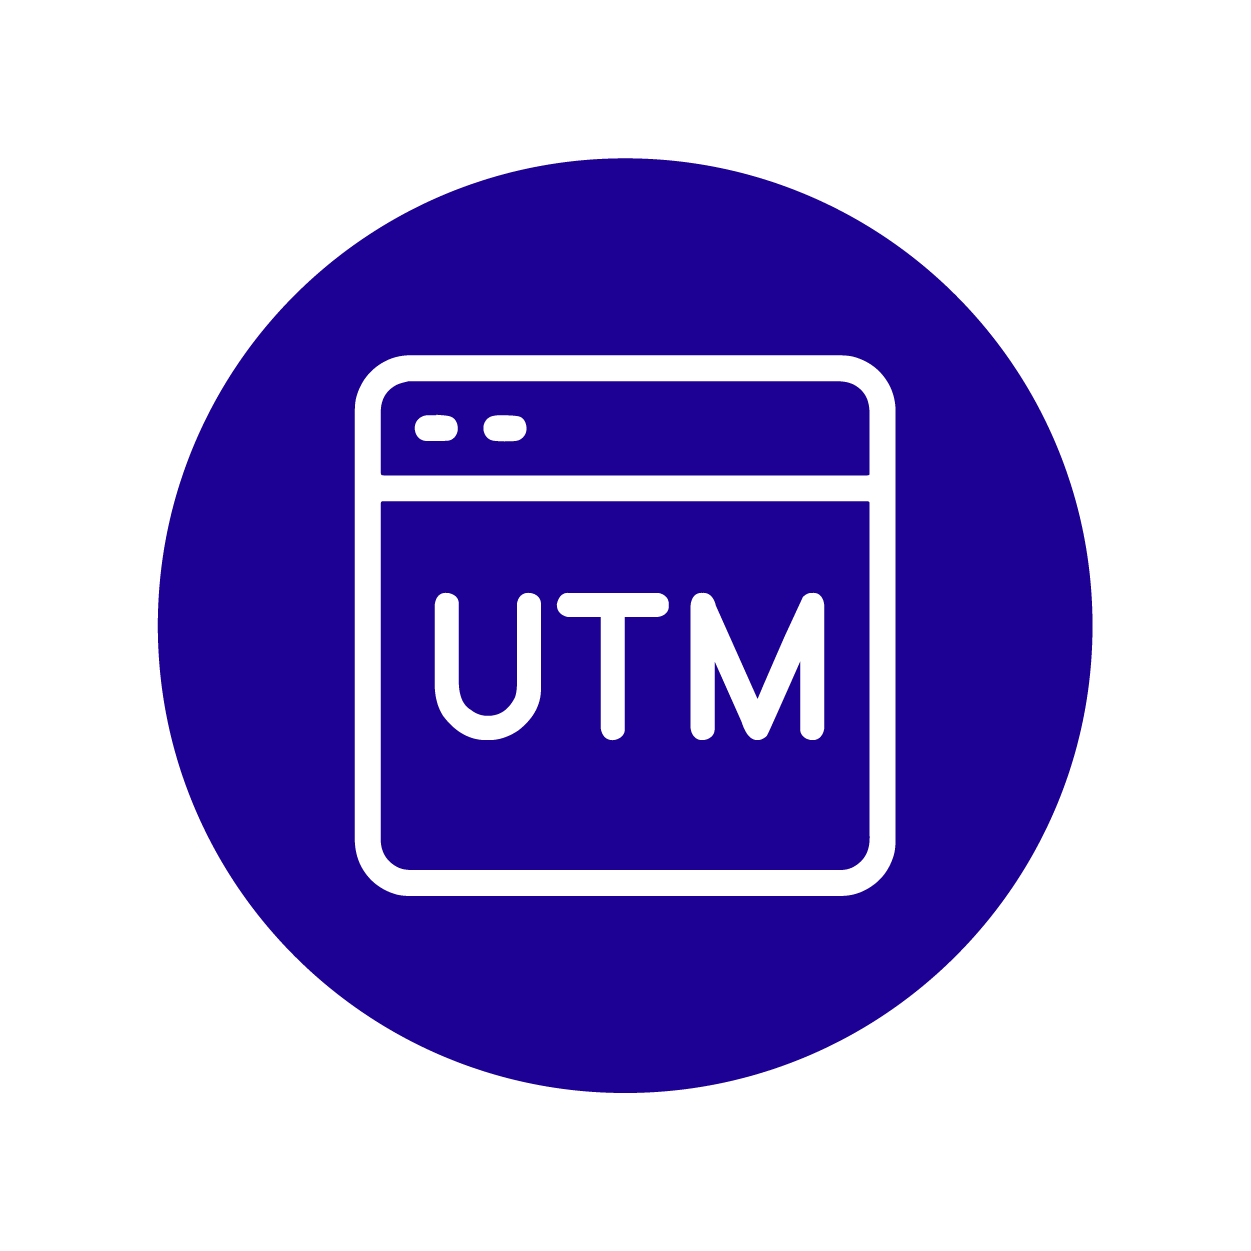 Unified threat modelling (UTM)